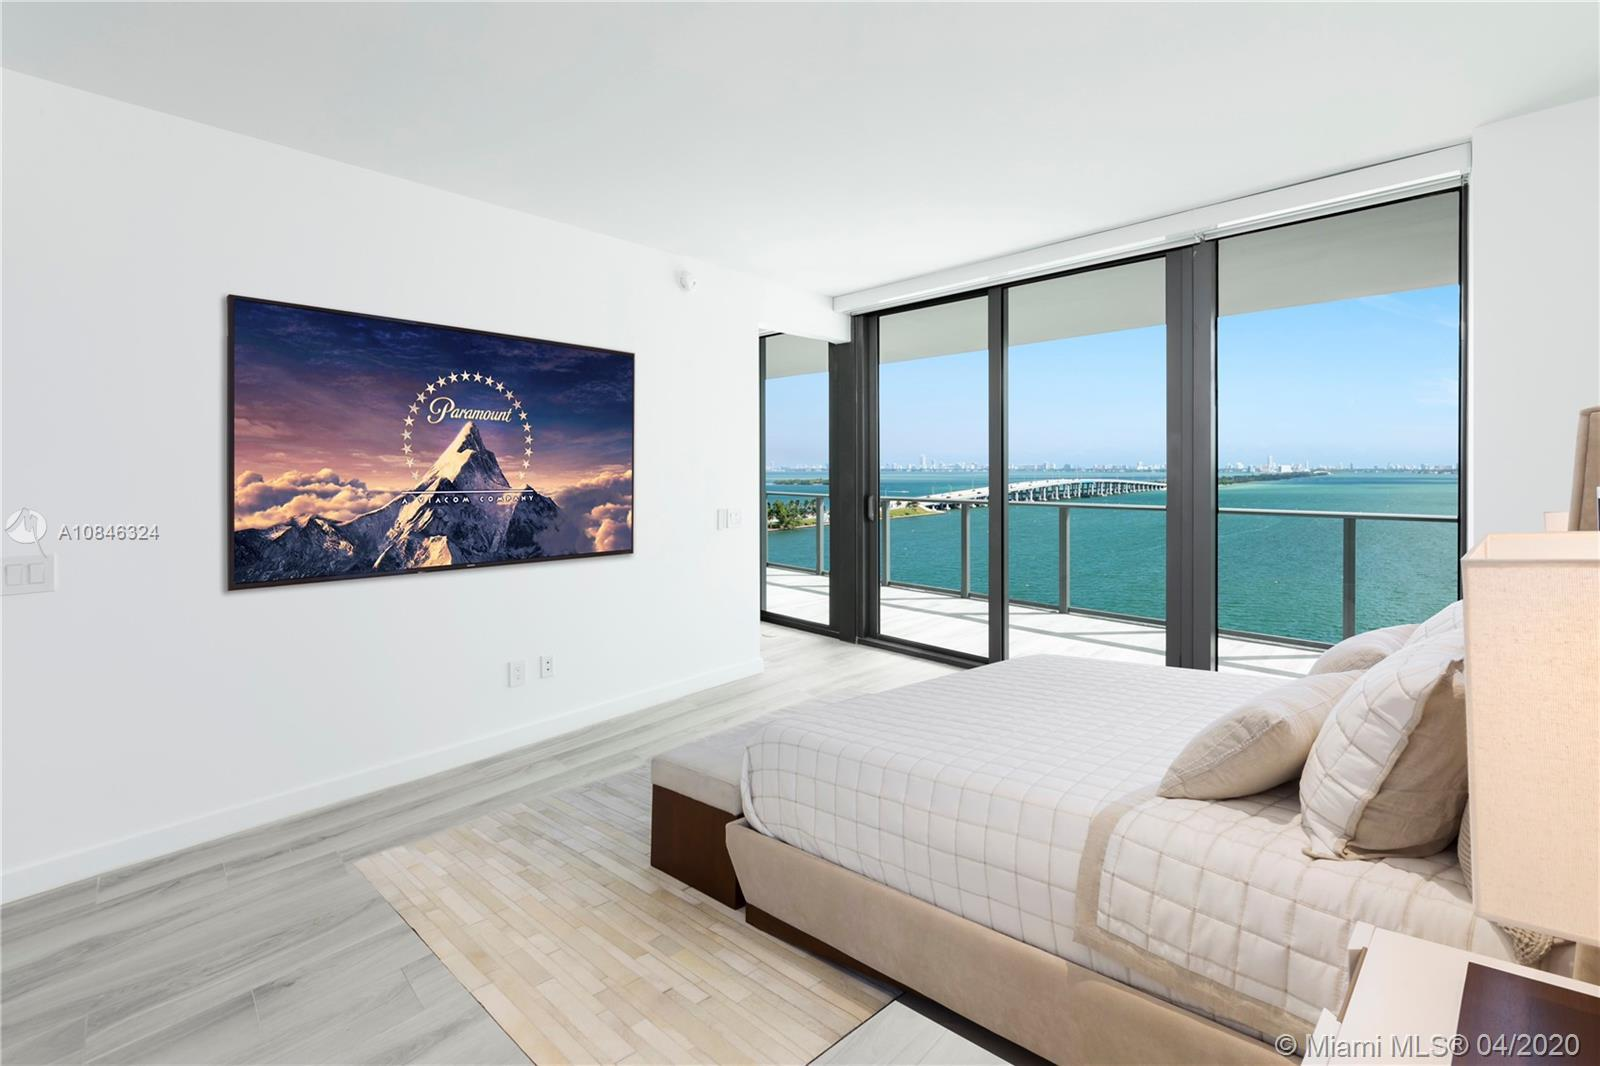 This never before lived-in 3 BD + Den/ 3.5 BA residence at the luxurious One Paraiso tower, designed